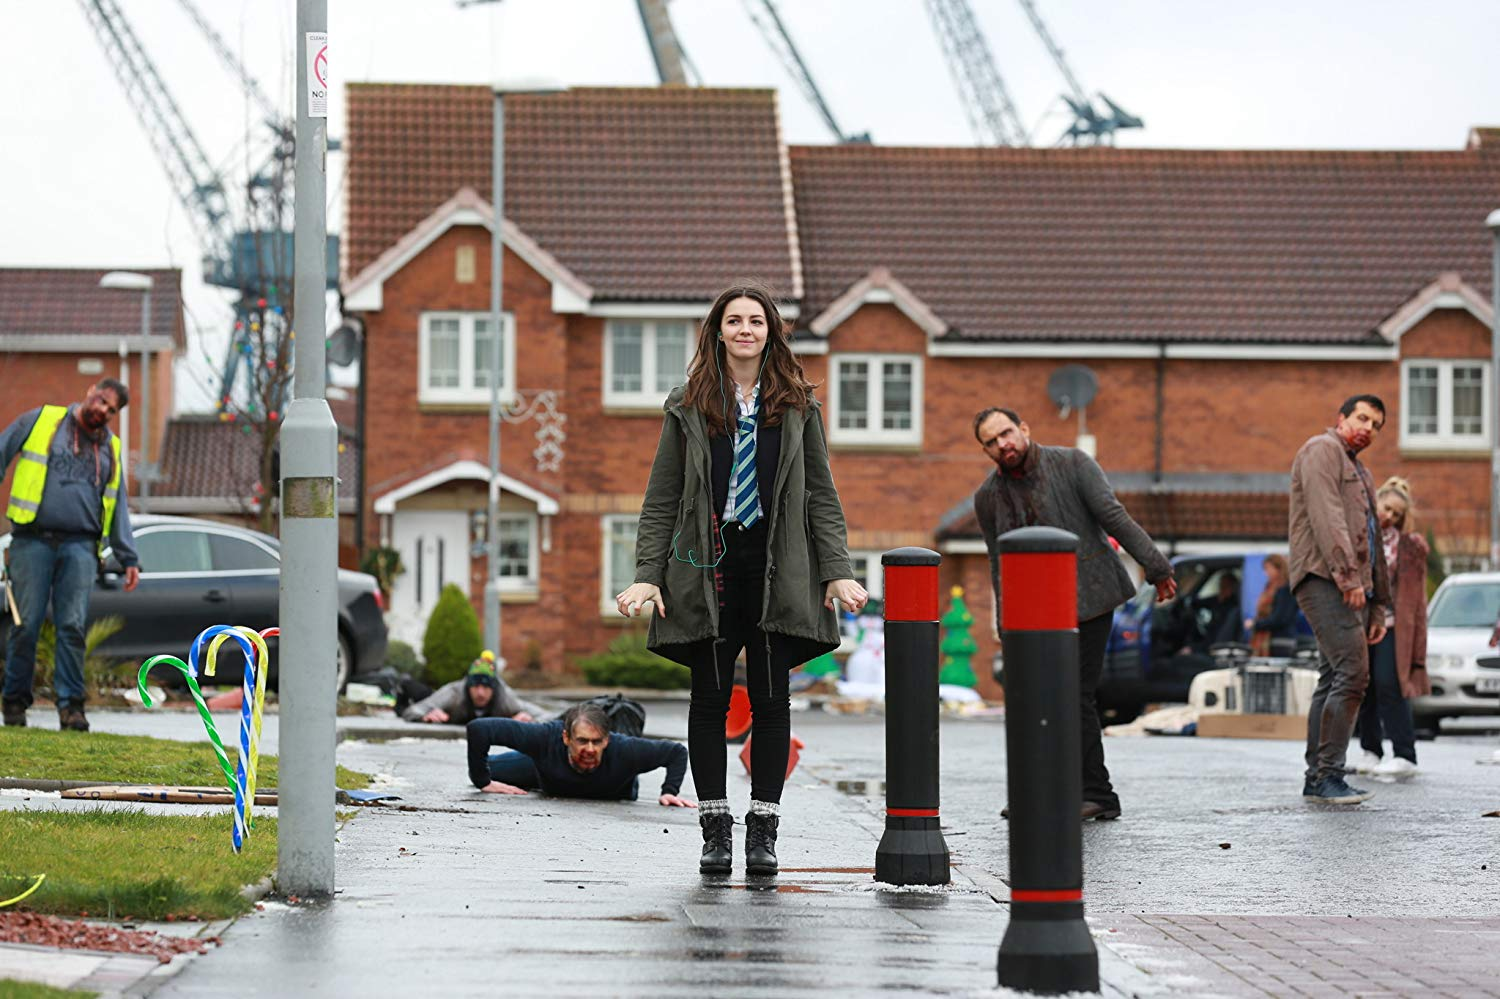 Anna (Ella Hunt) sets off on her school day unnoticing of the zombie apocalypse around her in Anna and the Apocalypse (2017)